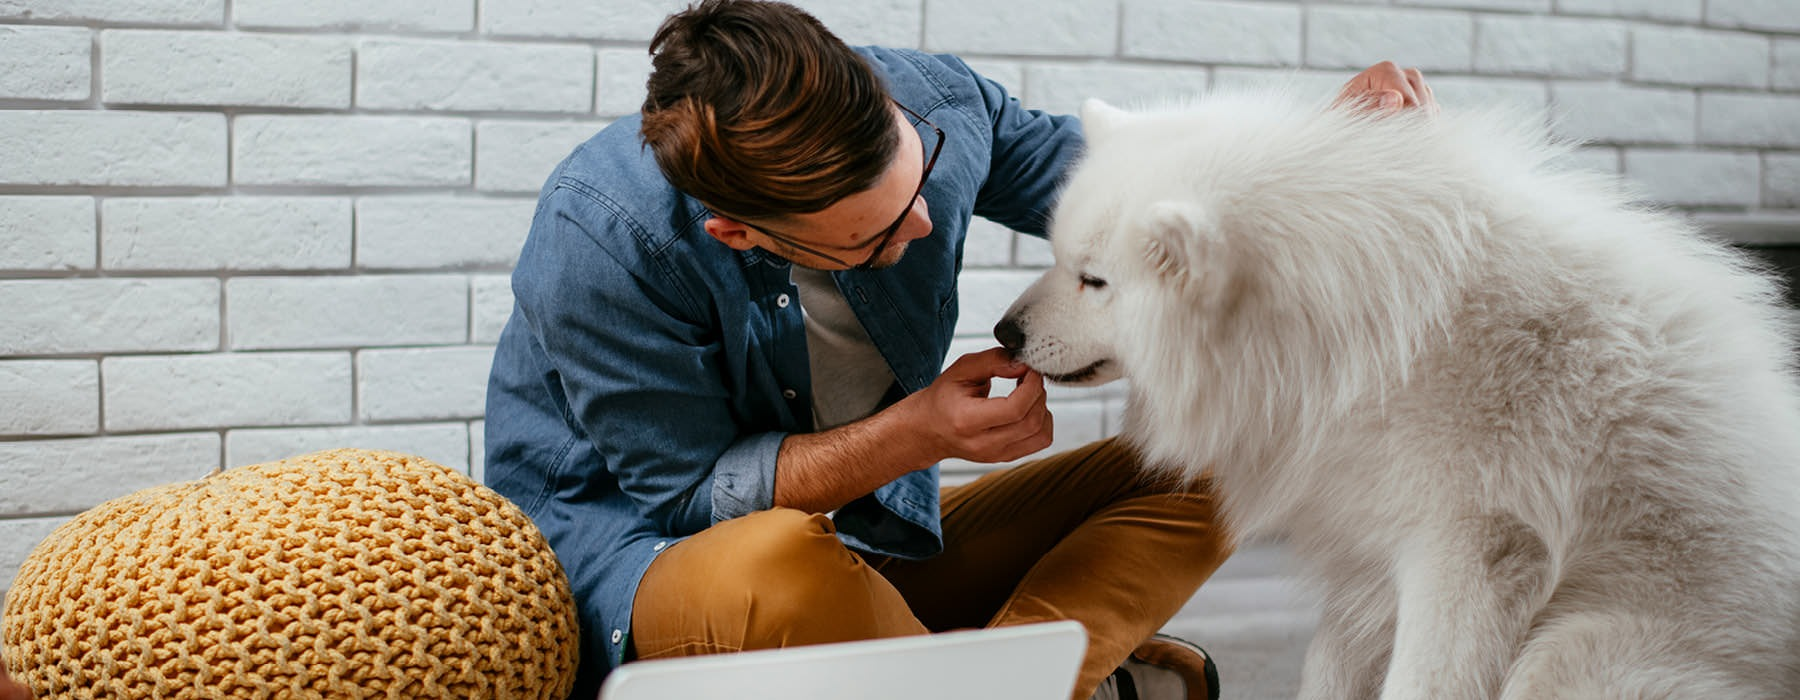 hipster sits on living room floor and feeds his dog